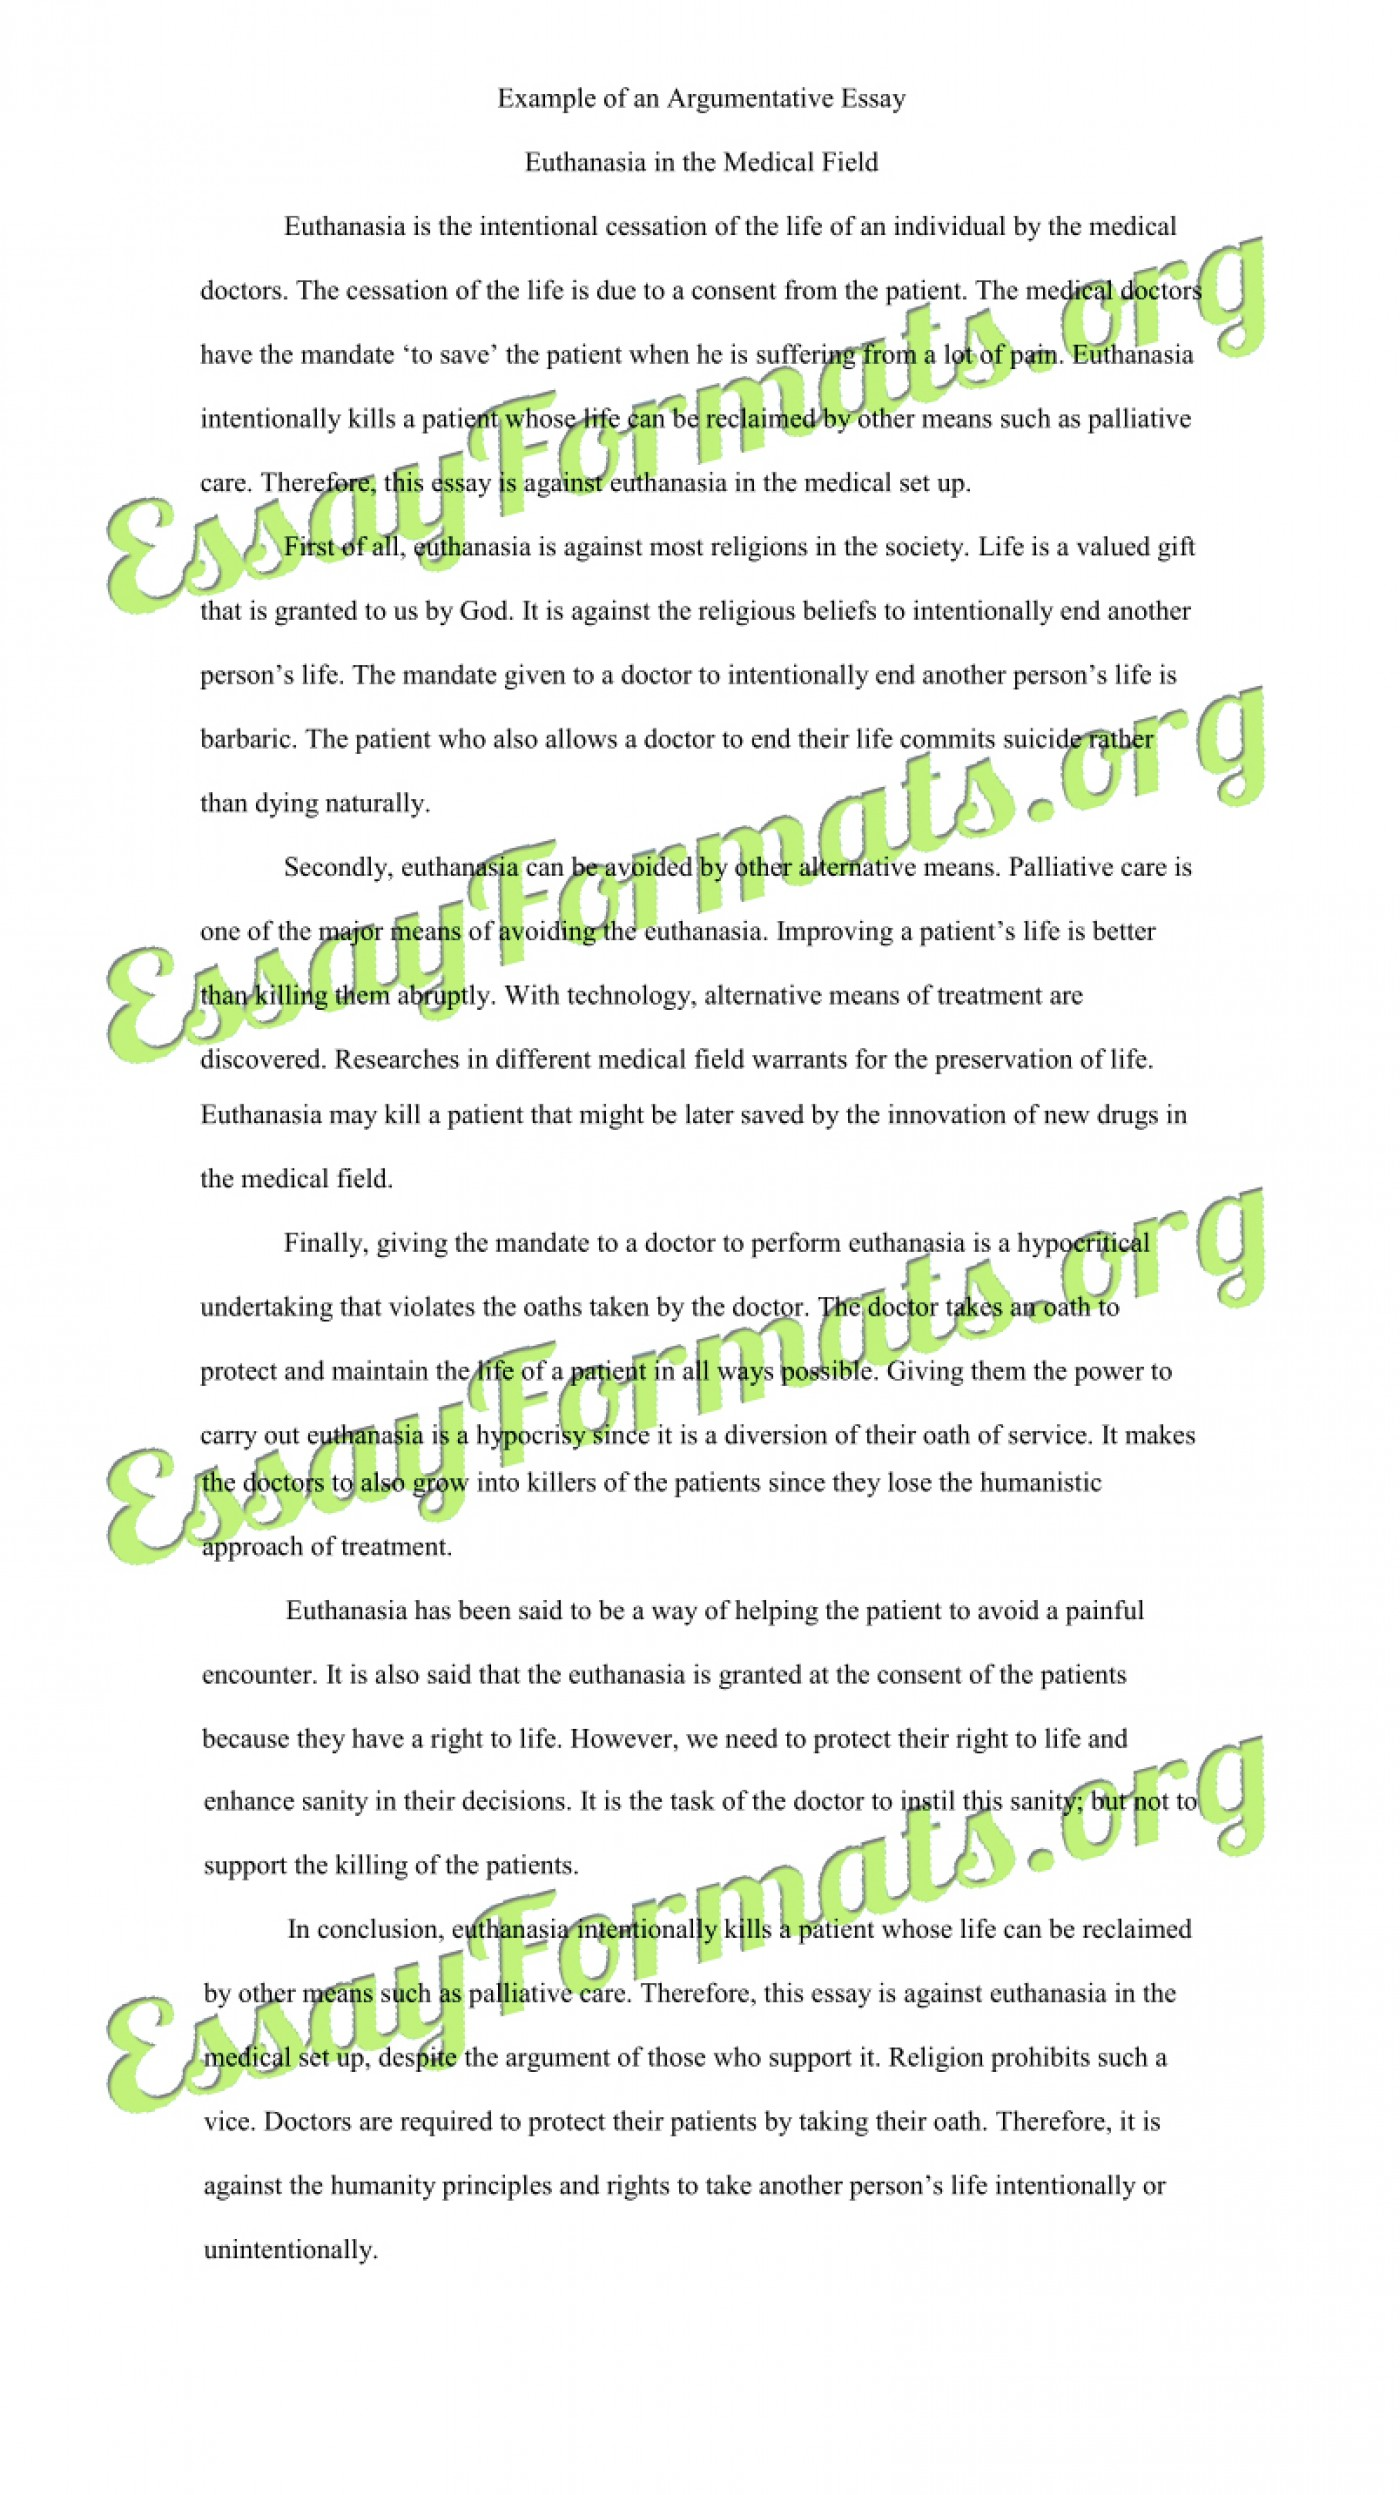 005 Essay Example Euthanasia Argumentative Counter Argument Persuasive Examples L Stirring Outline Conclusion Pdf 1400